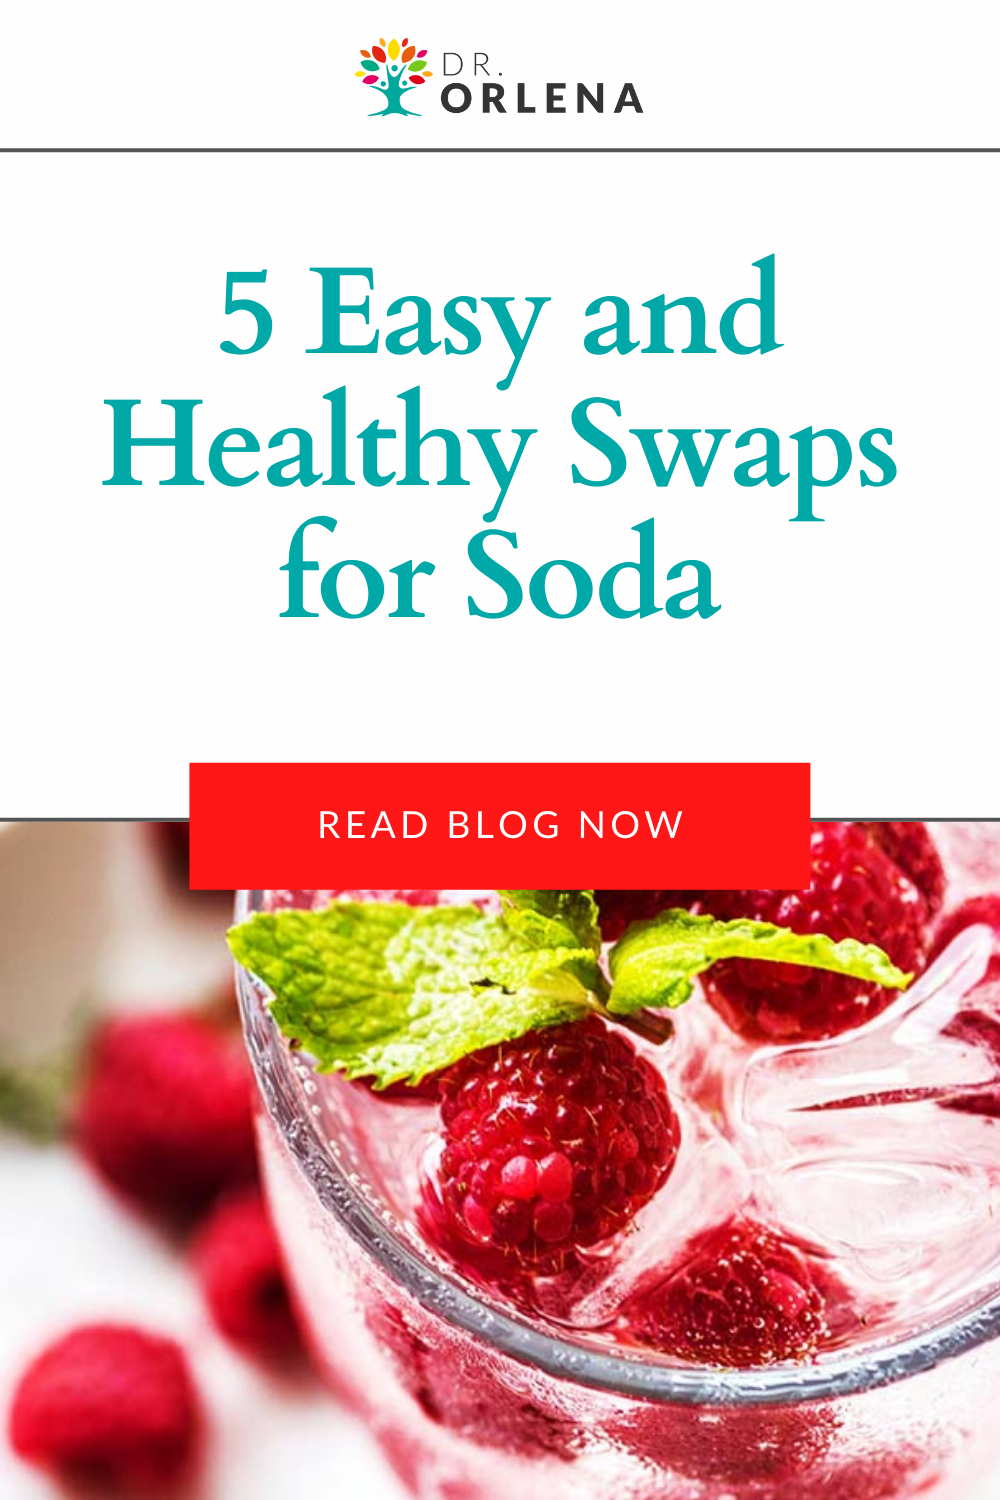 A glass of fizzy water topped with raspberries #sugarfree #sodaswaps